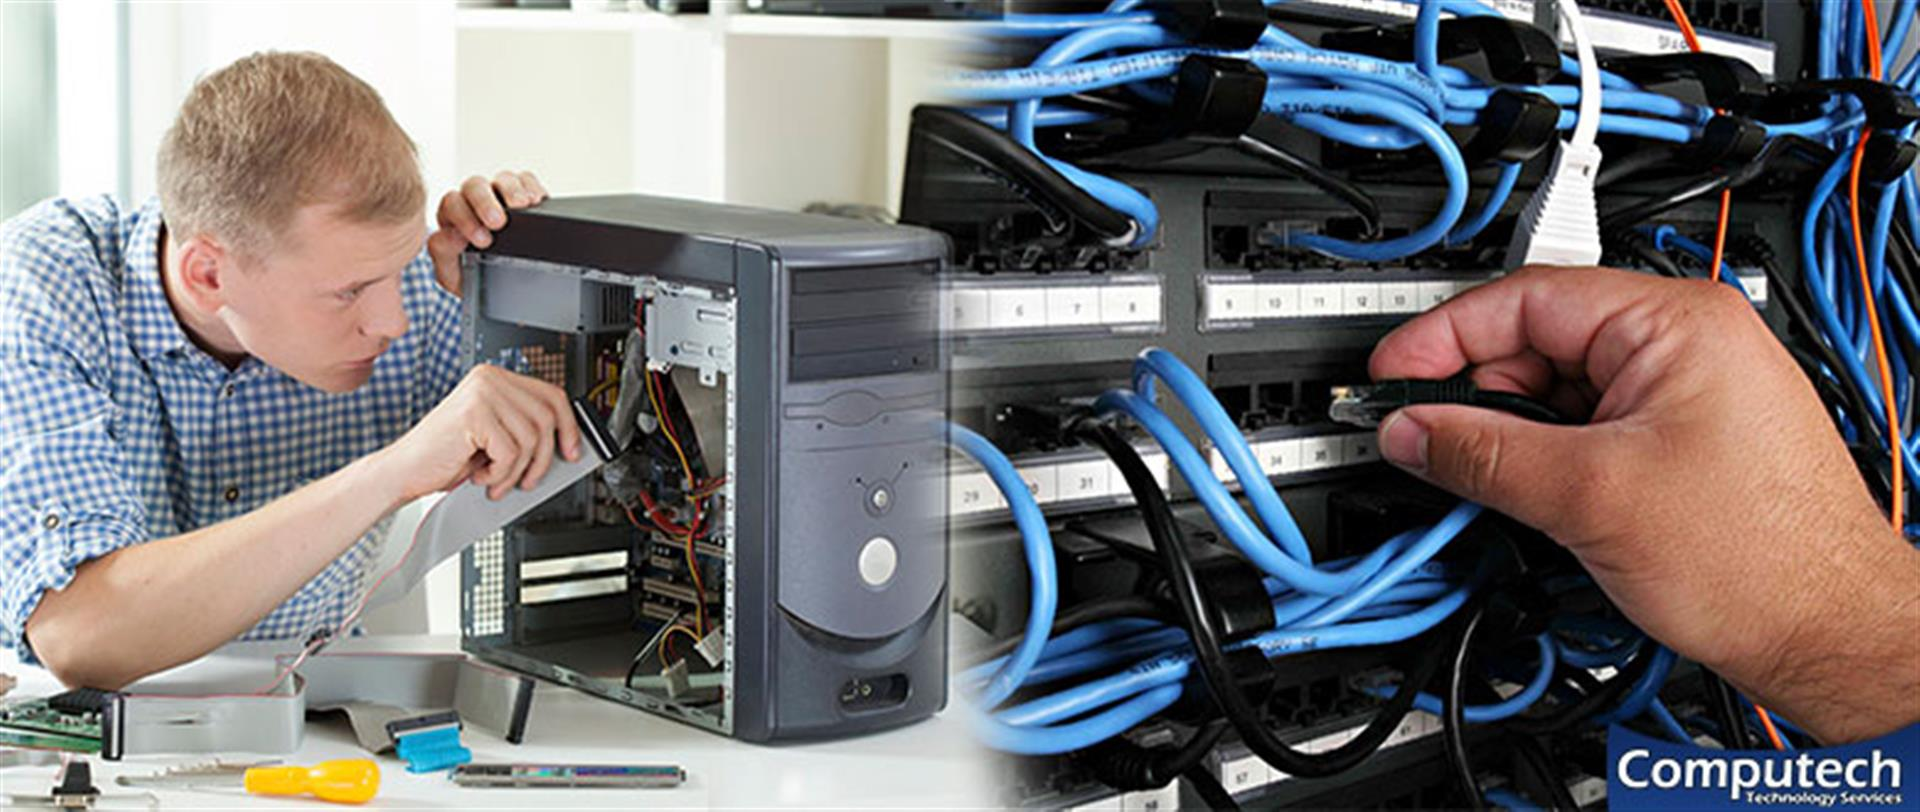 Athens Alabama On Site Computer PC & Printer Repair, Networking, Voice & Data Wiring Solutions